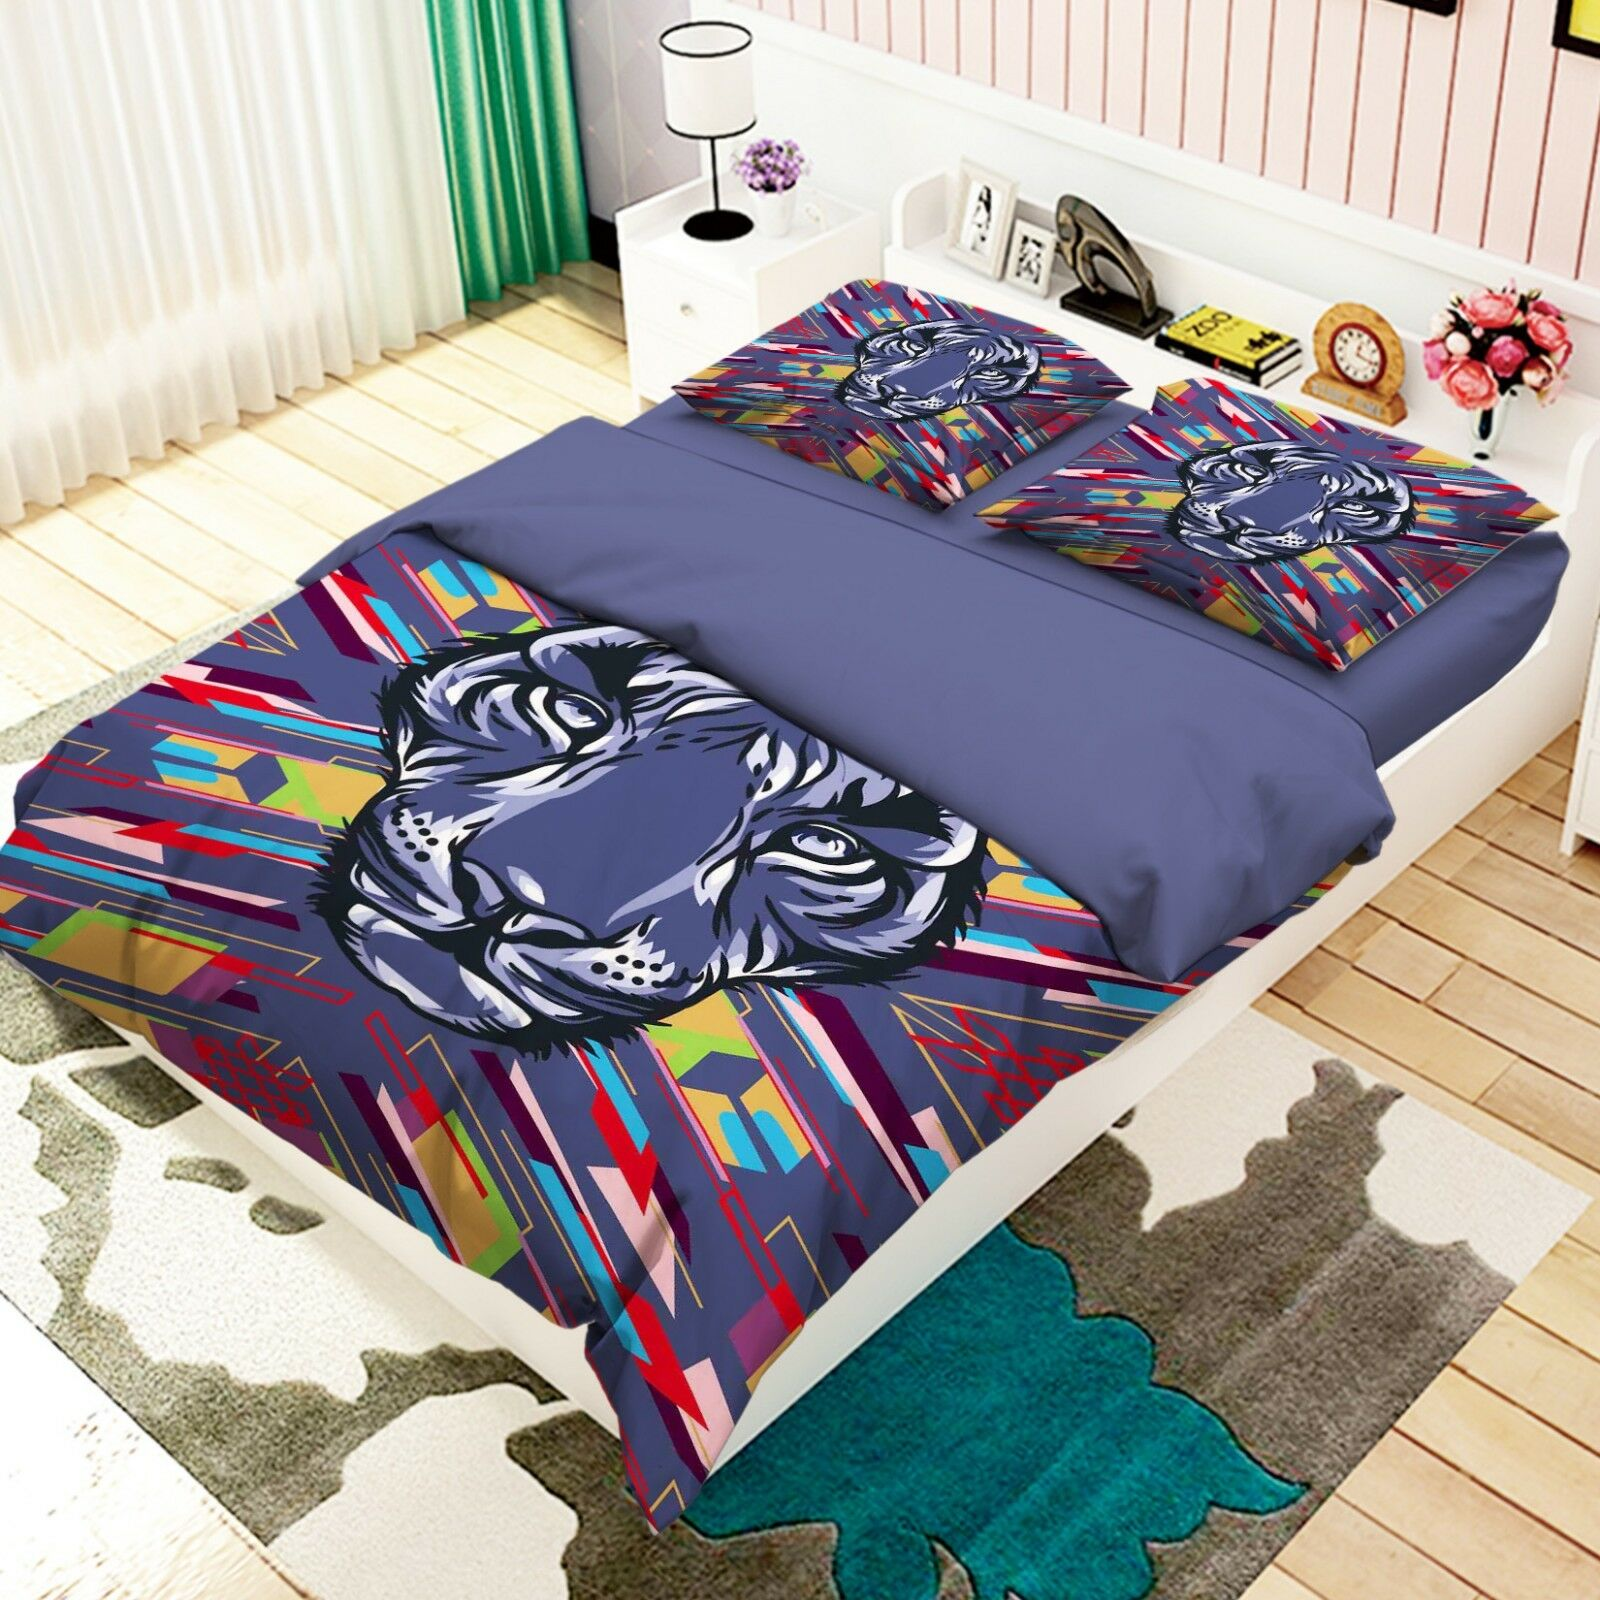 3D Doodle Tiger 688 688 688 Bed Pillowcases Quilt Duvet Cover Set Single King UK Lemon b94467